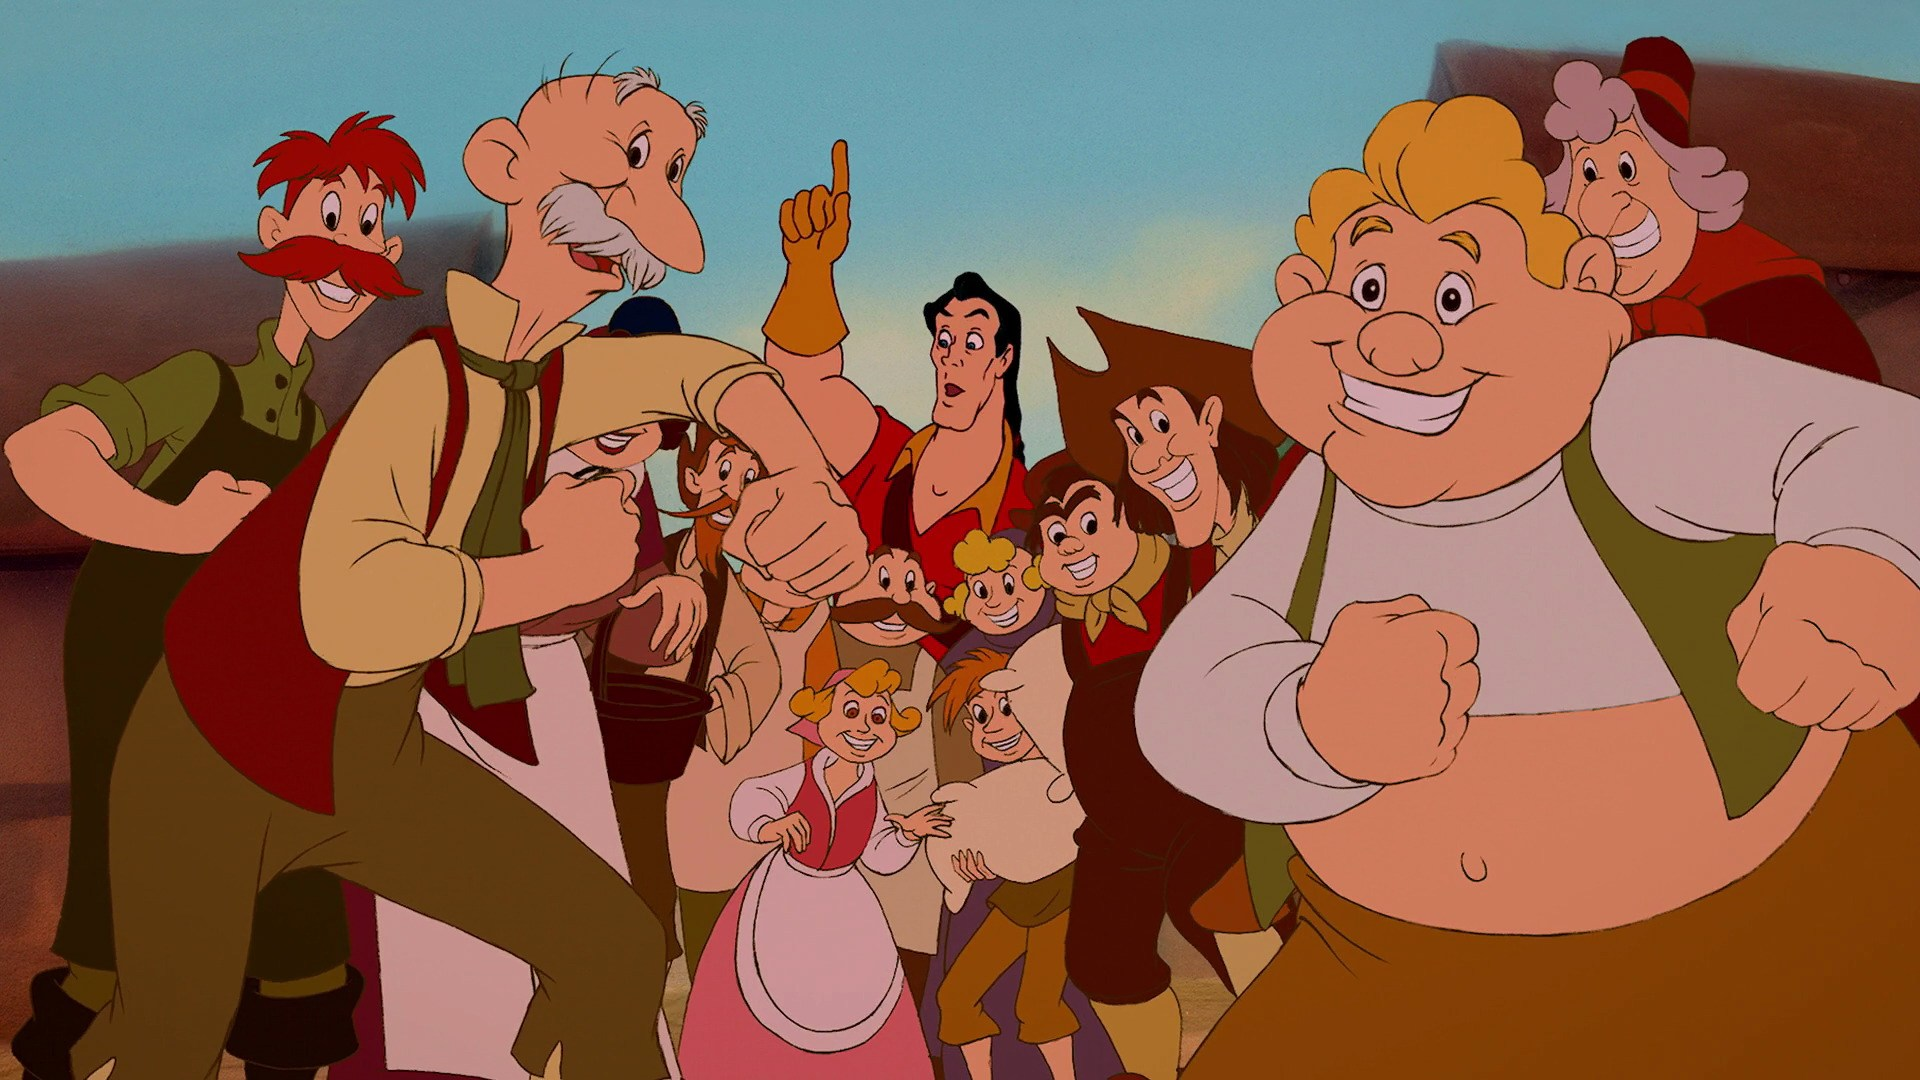 villagers beauty and the beast disney wiki wikia